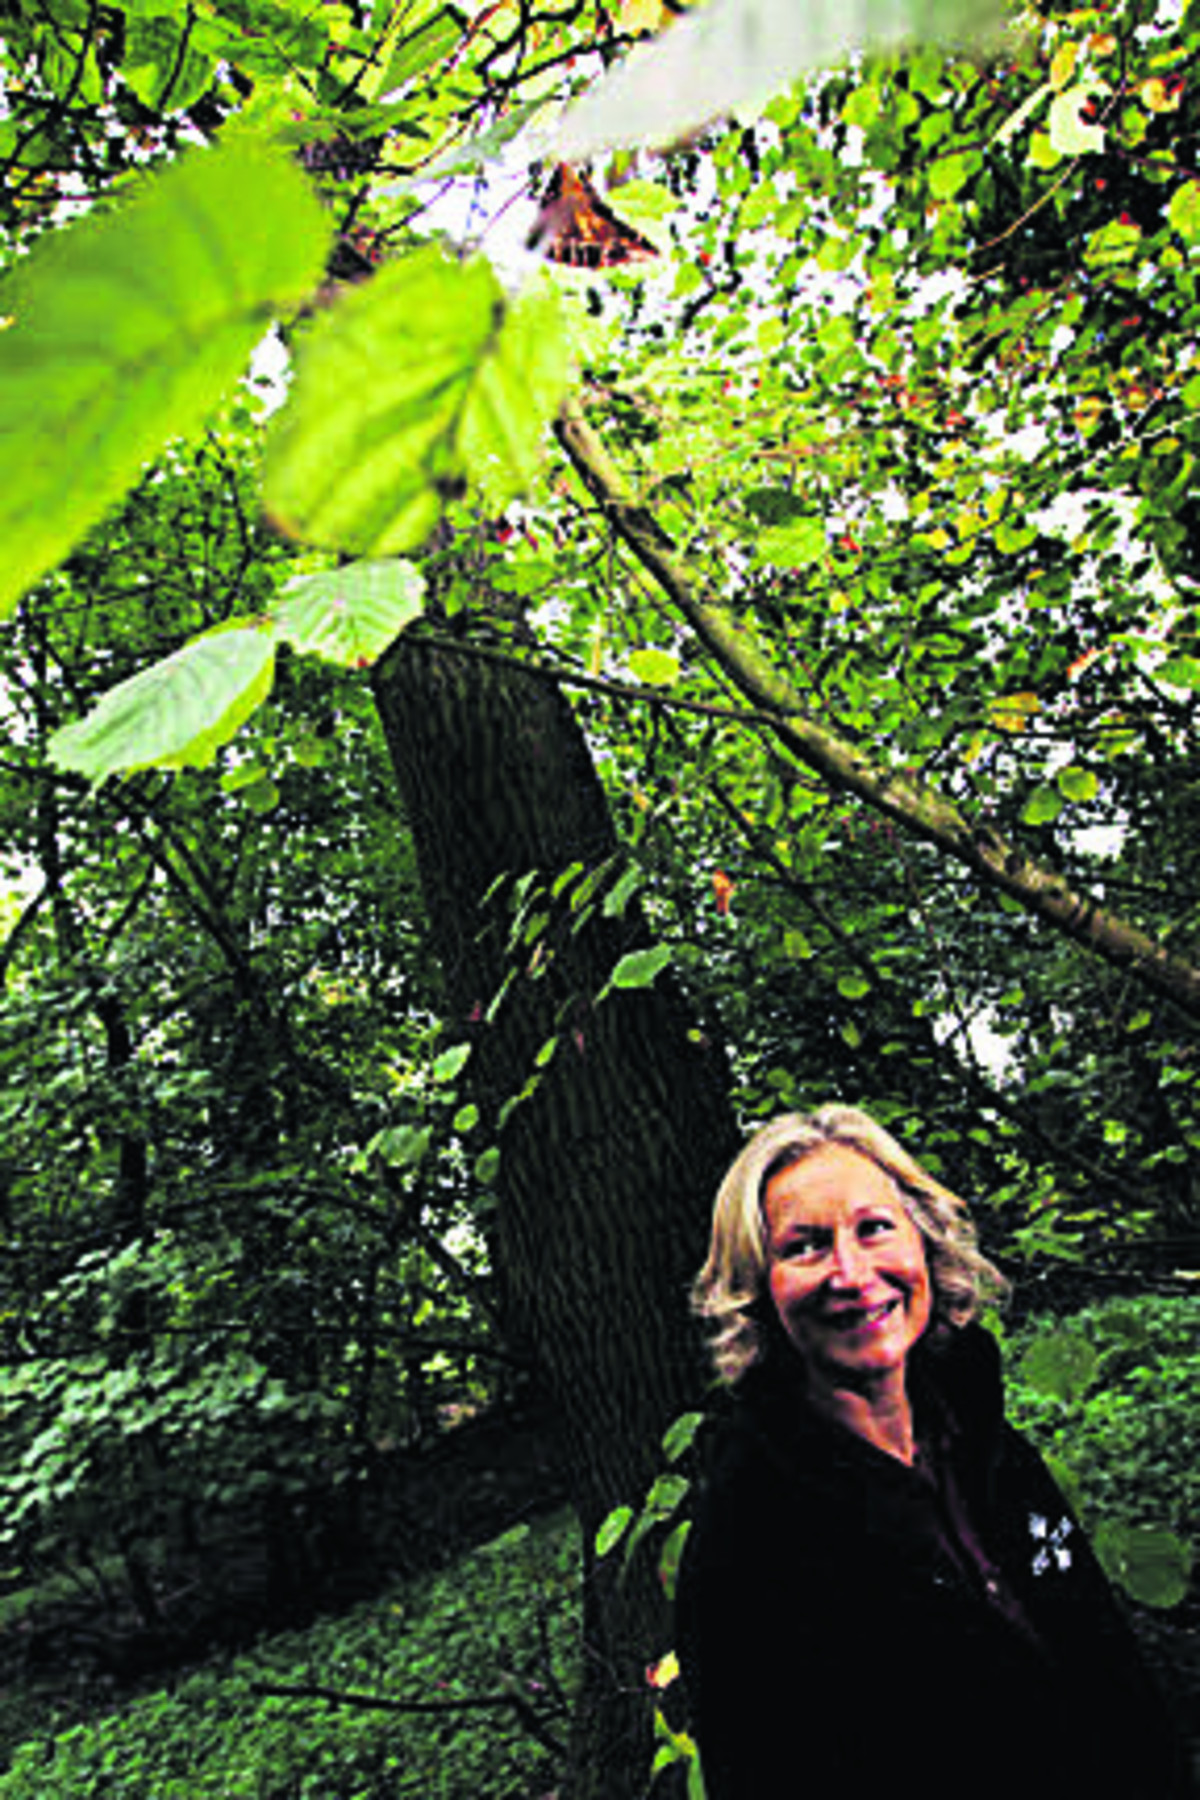 Earth Trust Chief Executive Jayne Manley